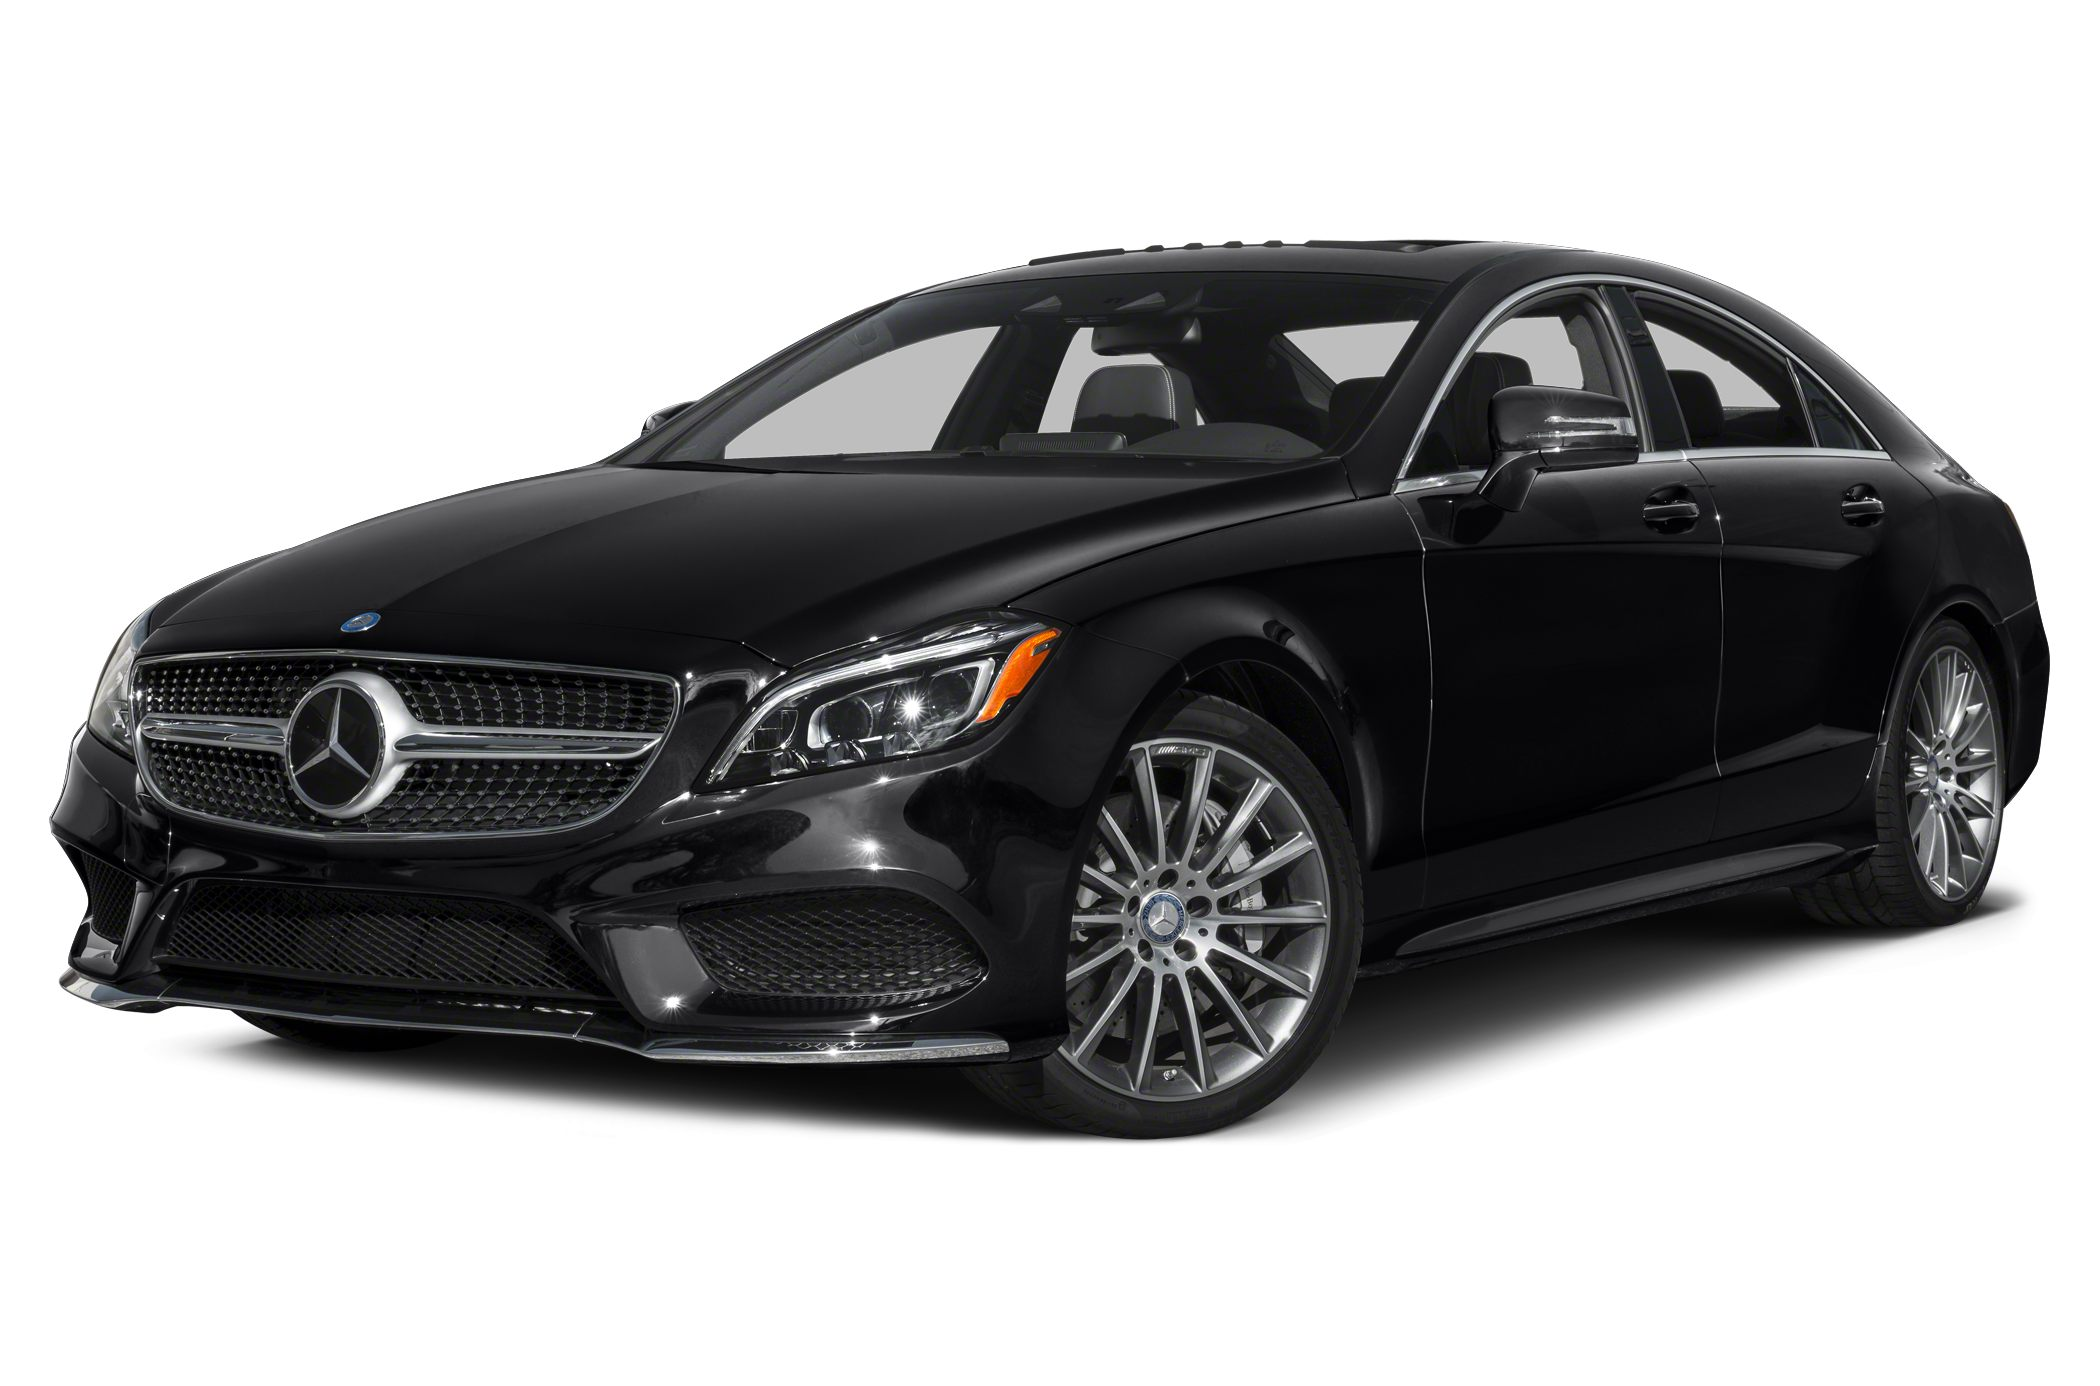 2015 Mercedes-Benz CLS-Class CLS400 4MATIC Sedan for sale in Latham for $78,290 with 11 miles.